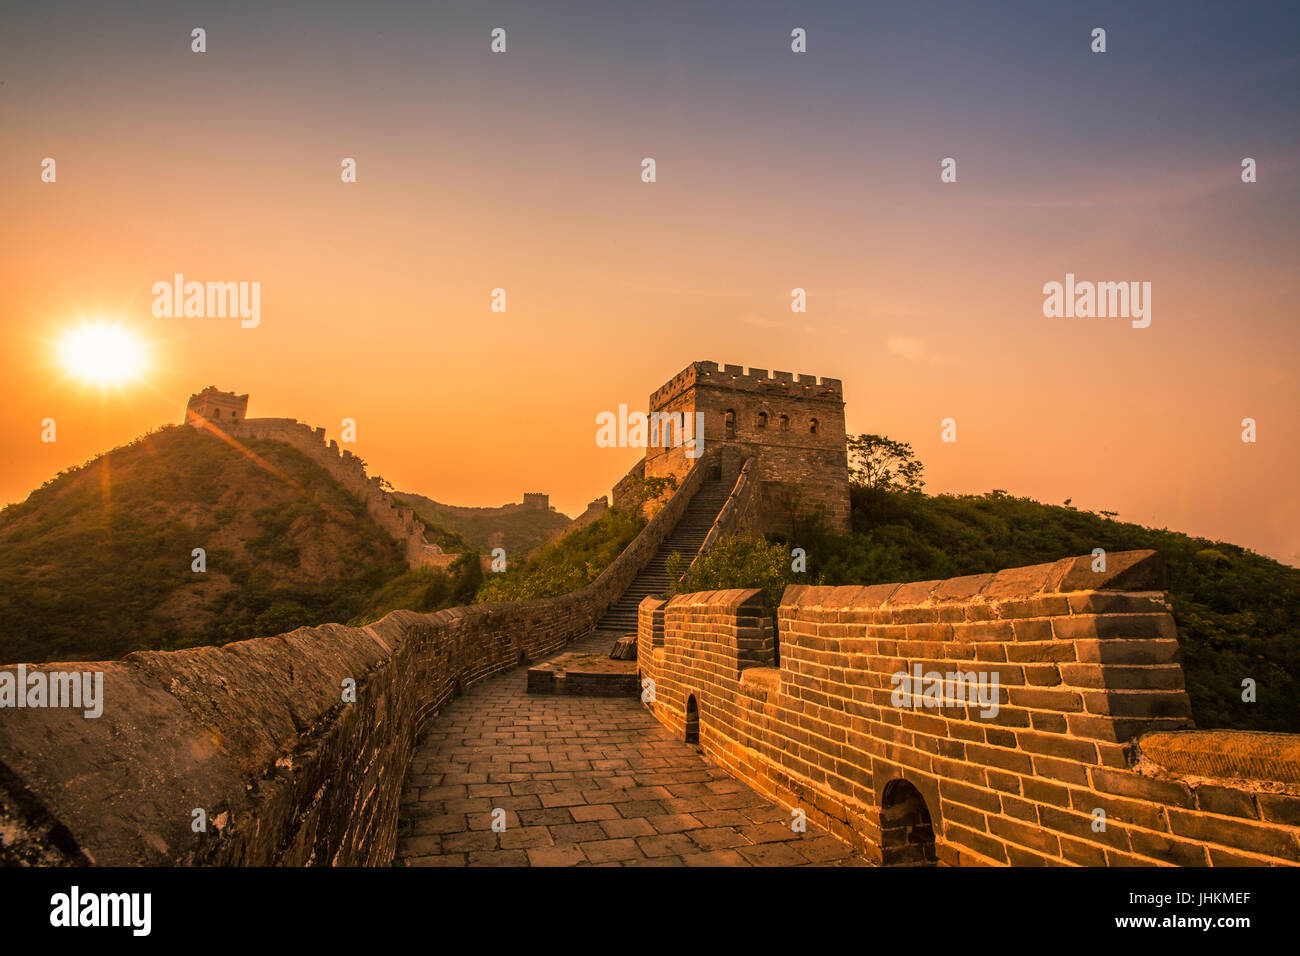 Jinshanling,Great Wall,Hebei,China - Stock Image